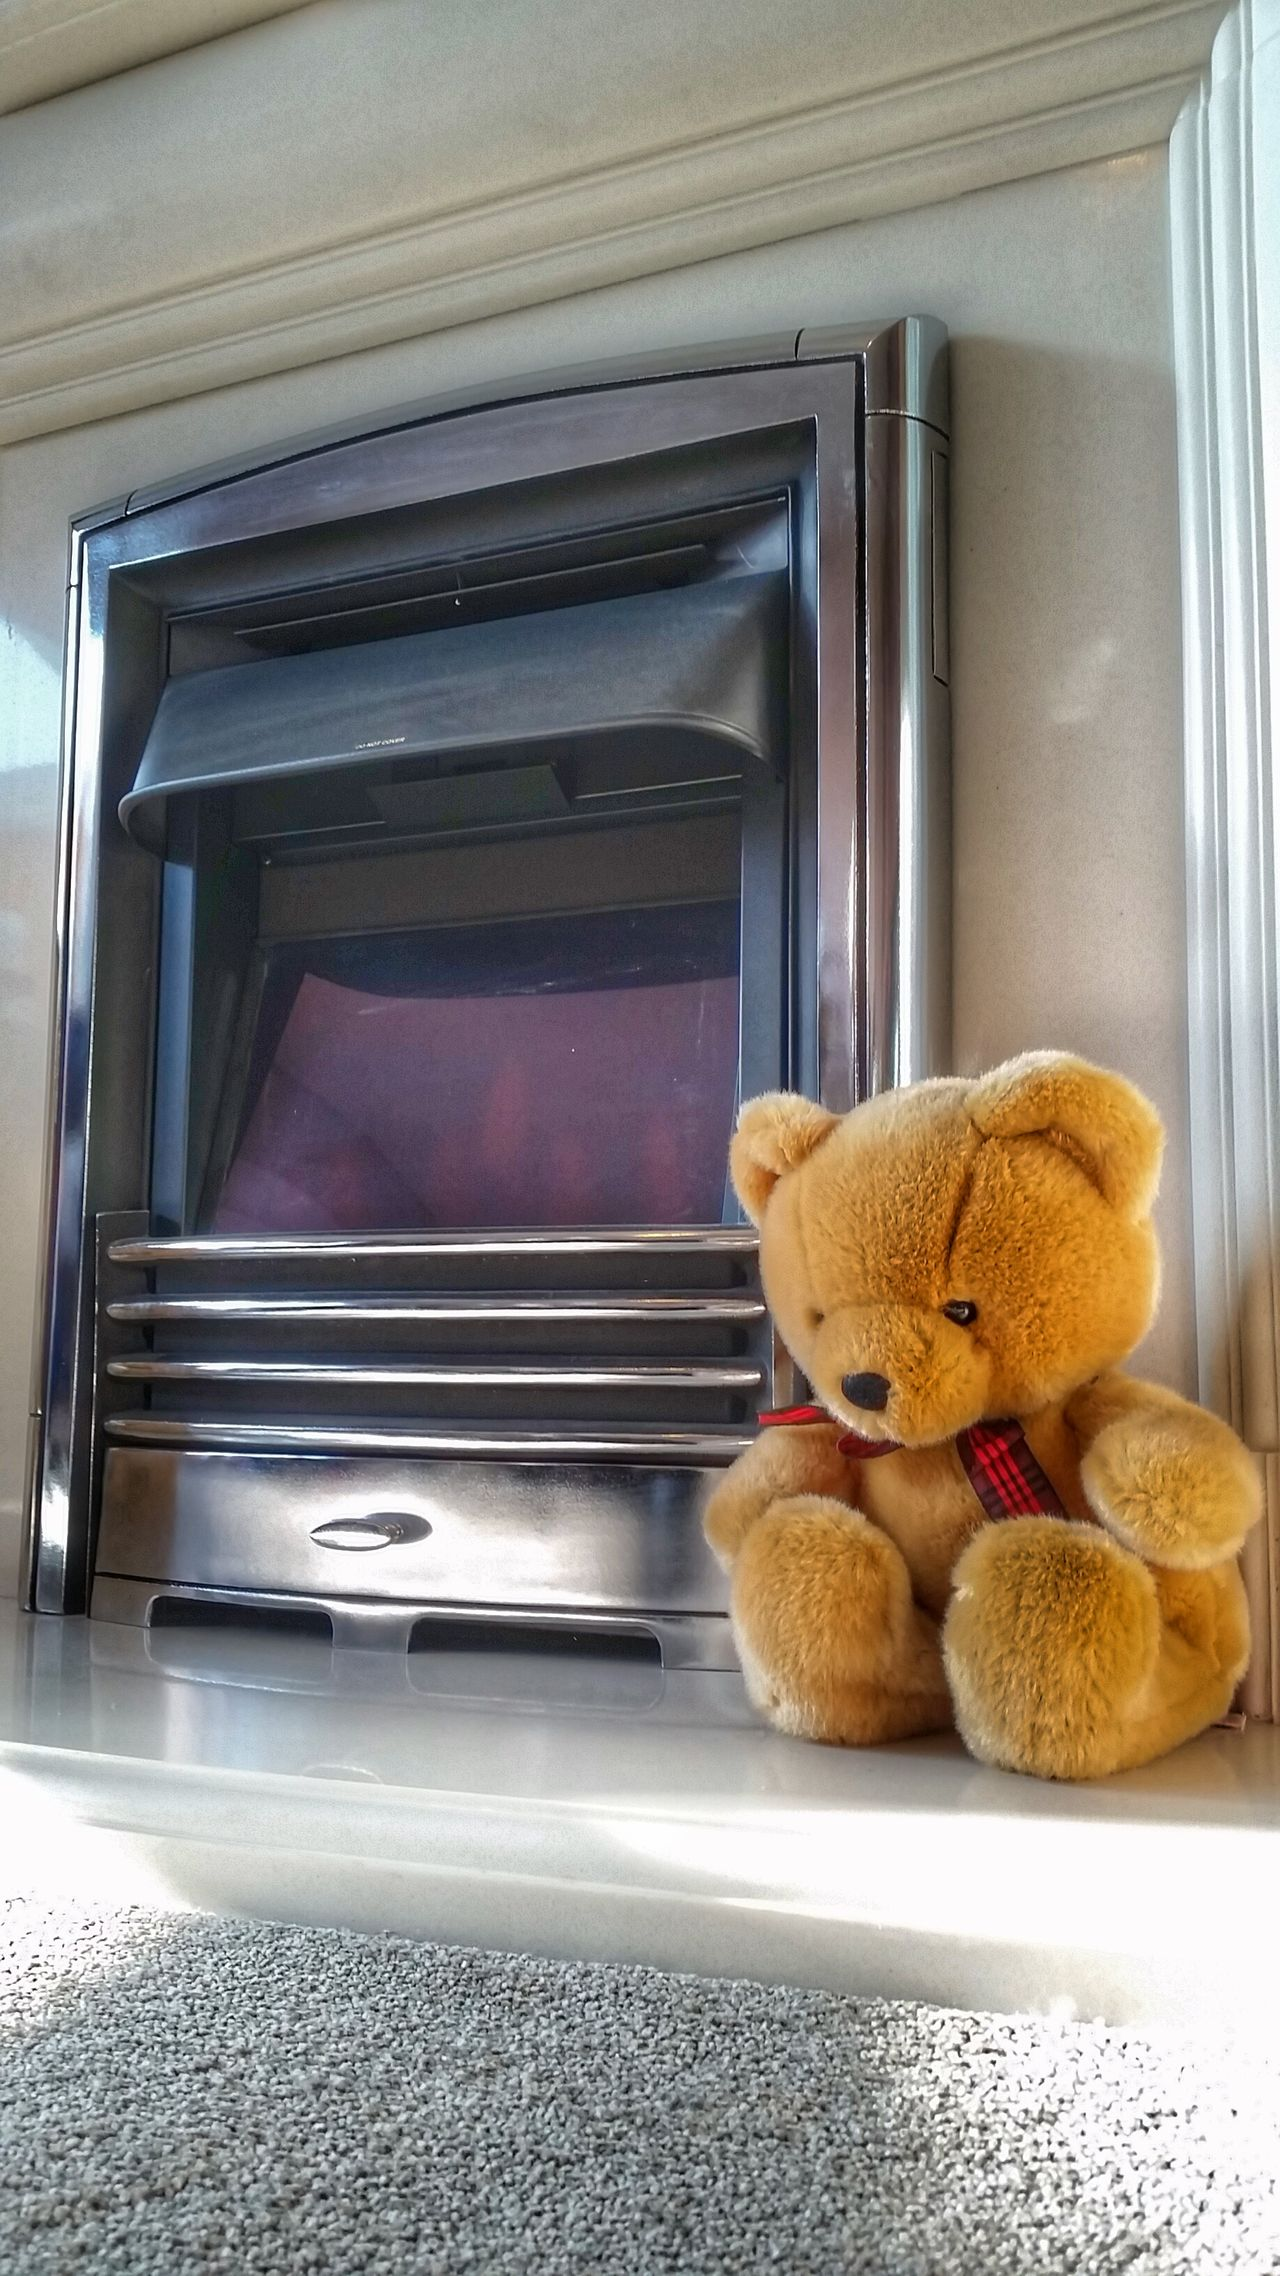 Fireplace Teddy Random Teddy Bear Electric Fire